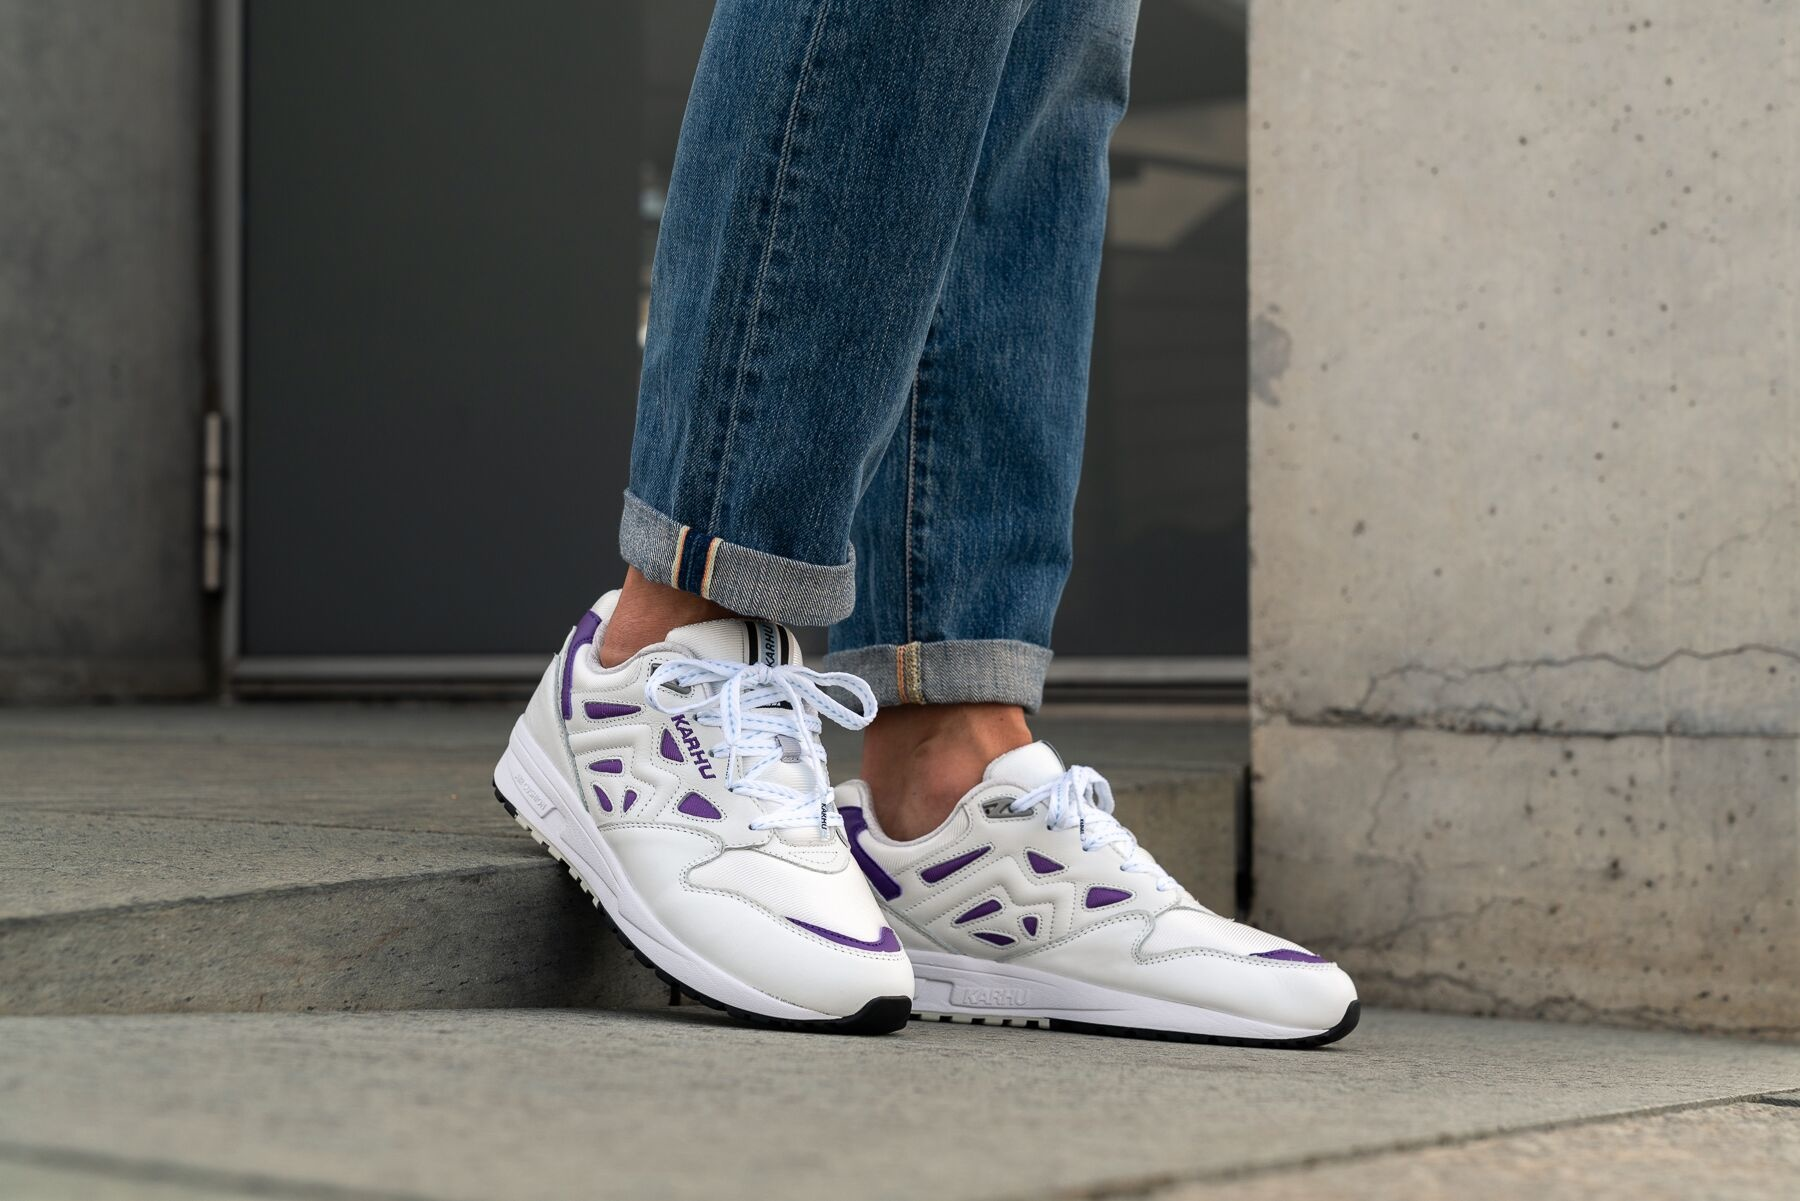 karhu-legacy-bright-white-tillandsia-shoes